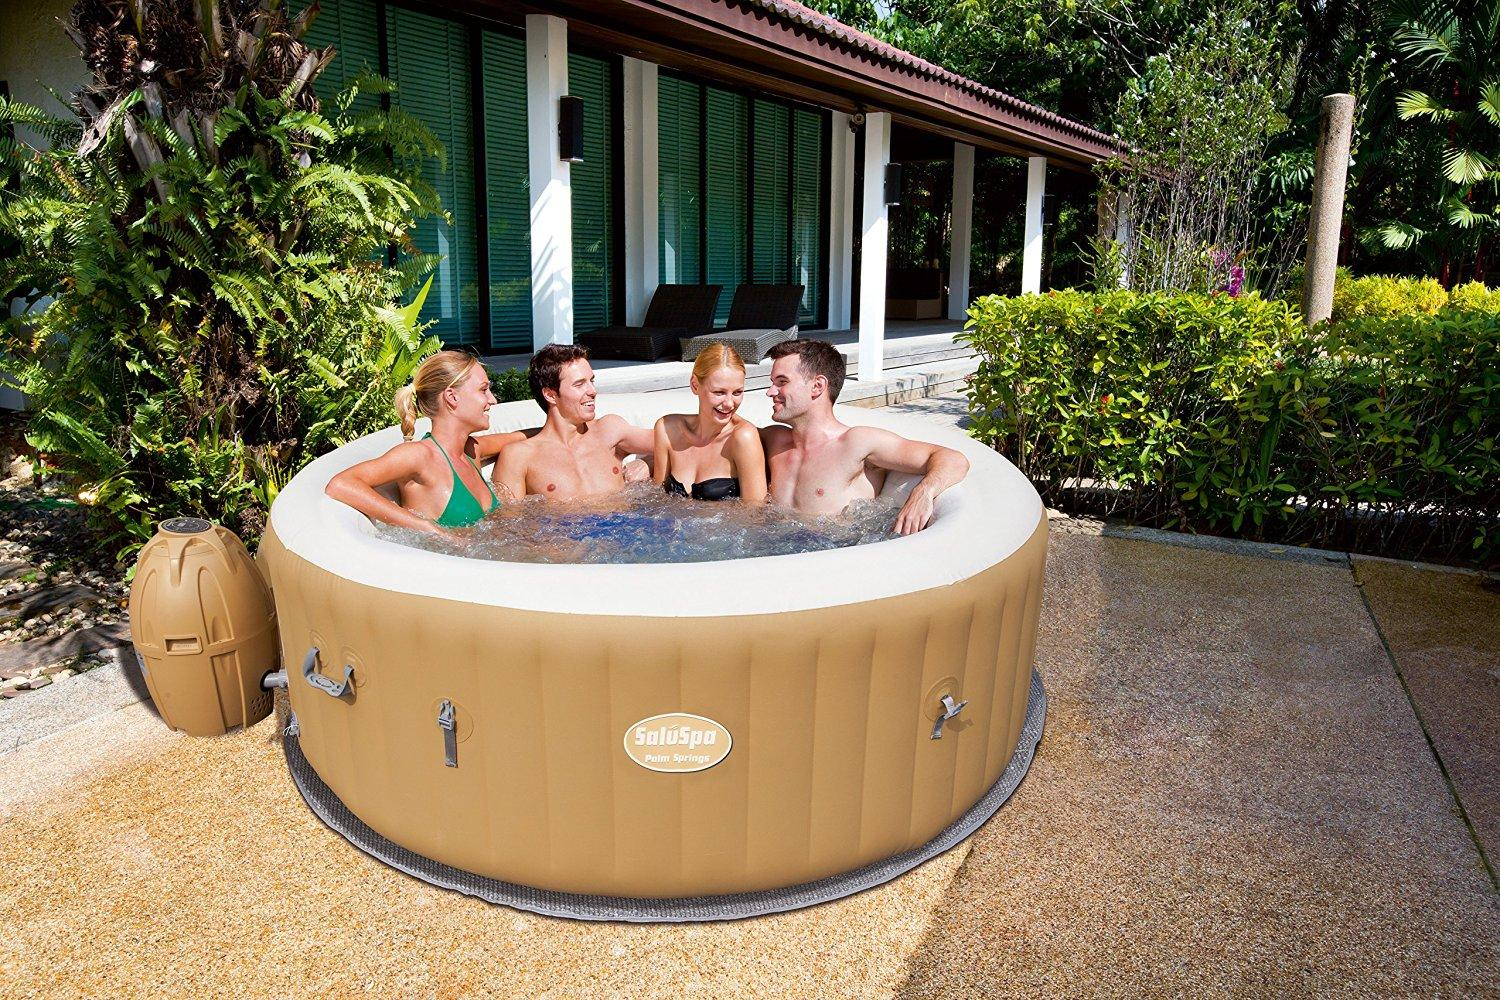 Garten Pool Rechteckig Bestway Lay Z Spa Inflatable Hot Tub Reviews 2016 | Pool